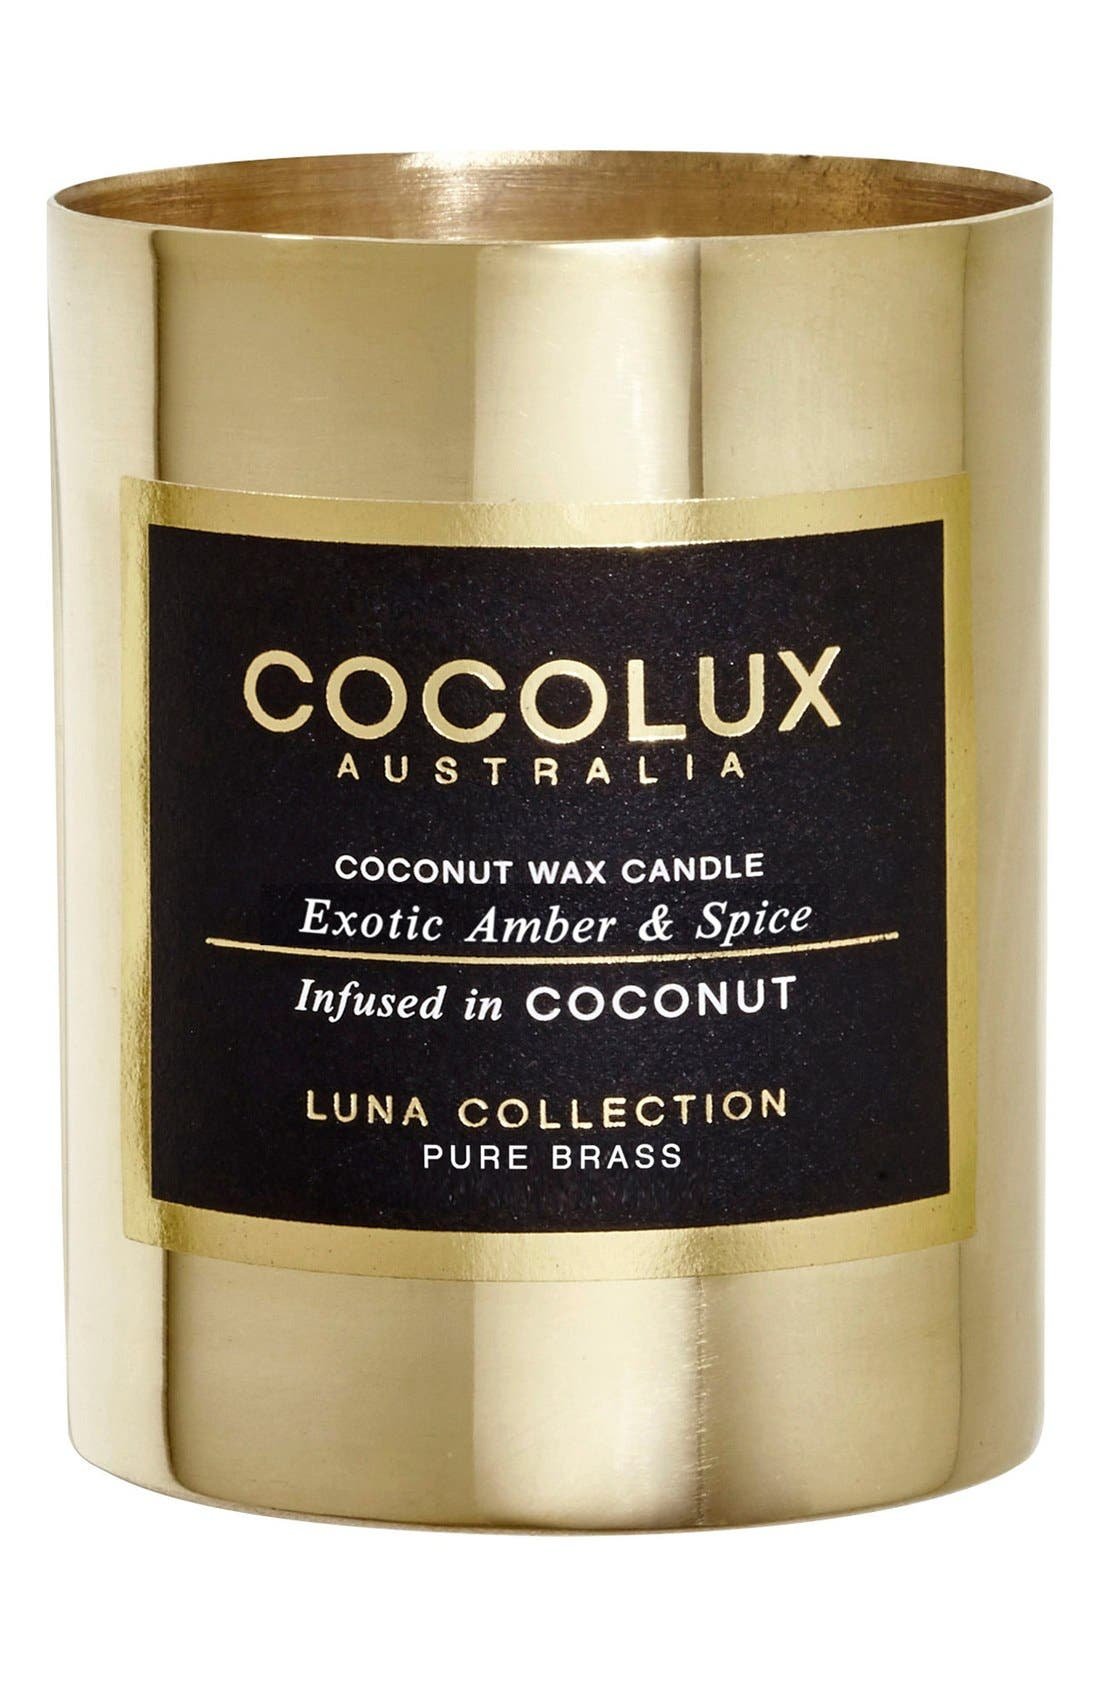 Cocolux Australia Exotic Amber & Spice Small Brass Candle